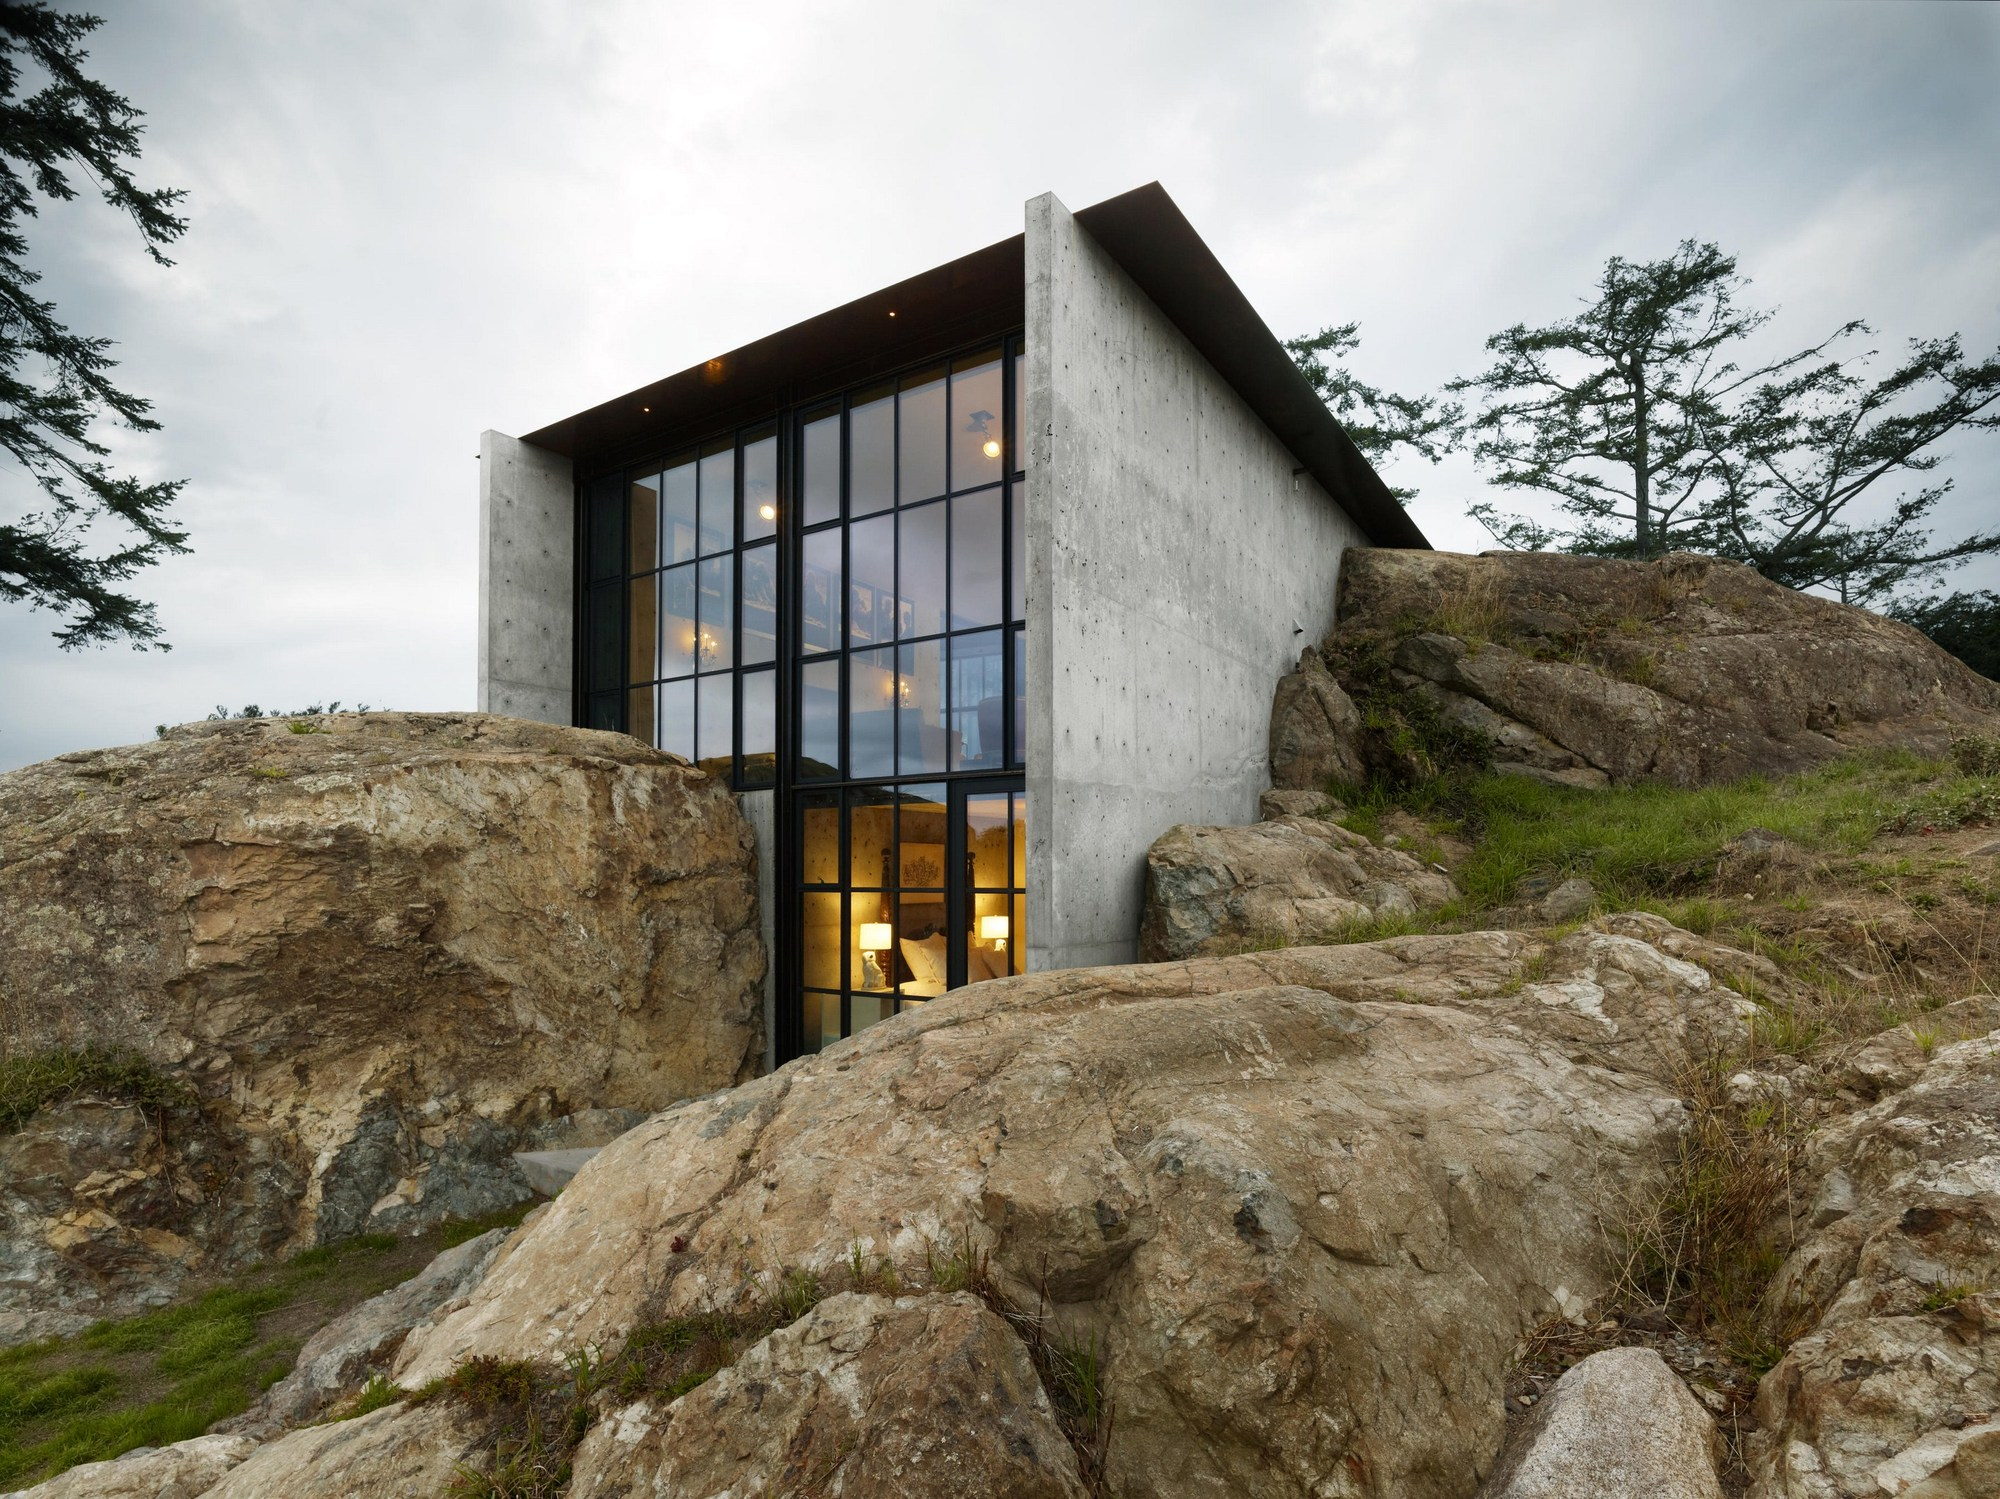 The pierre olson kundig archdaily - Sandblasting house exterior cost ...